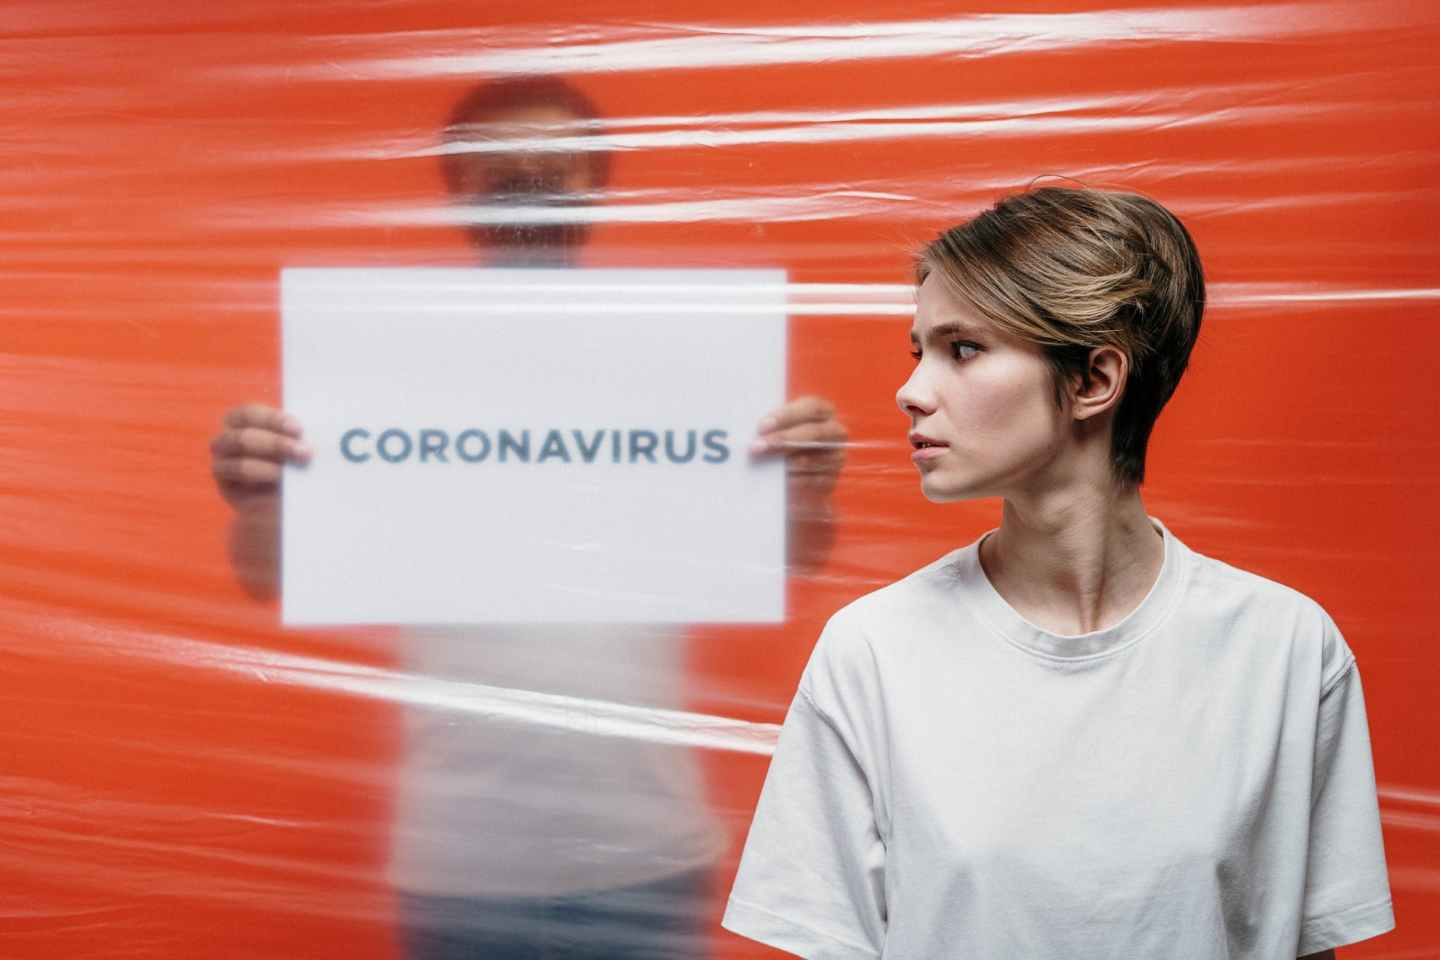 woman in white crew neck t shirt standing beside a man holding a placard of coronavirus